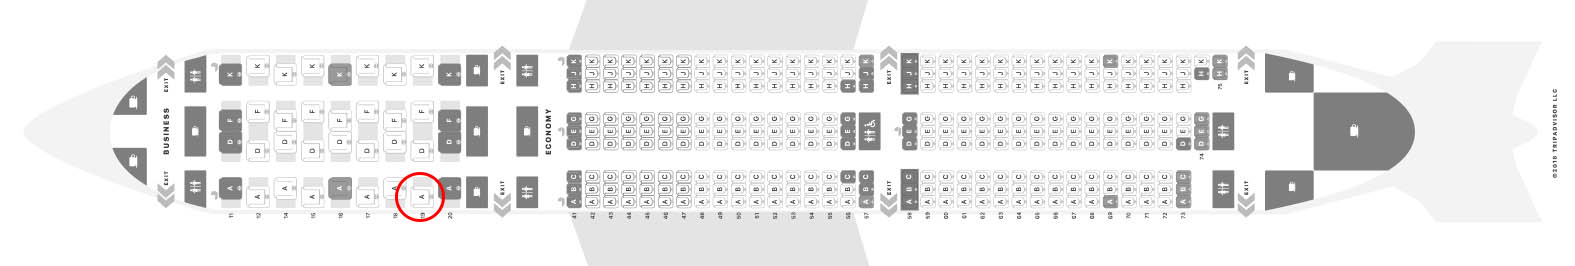 Singapore Airlines 787-10 seat map